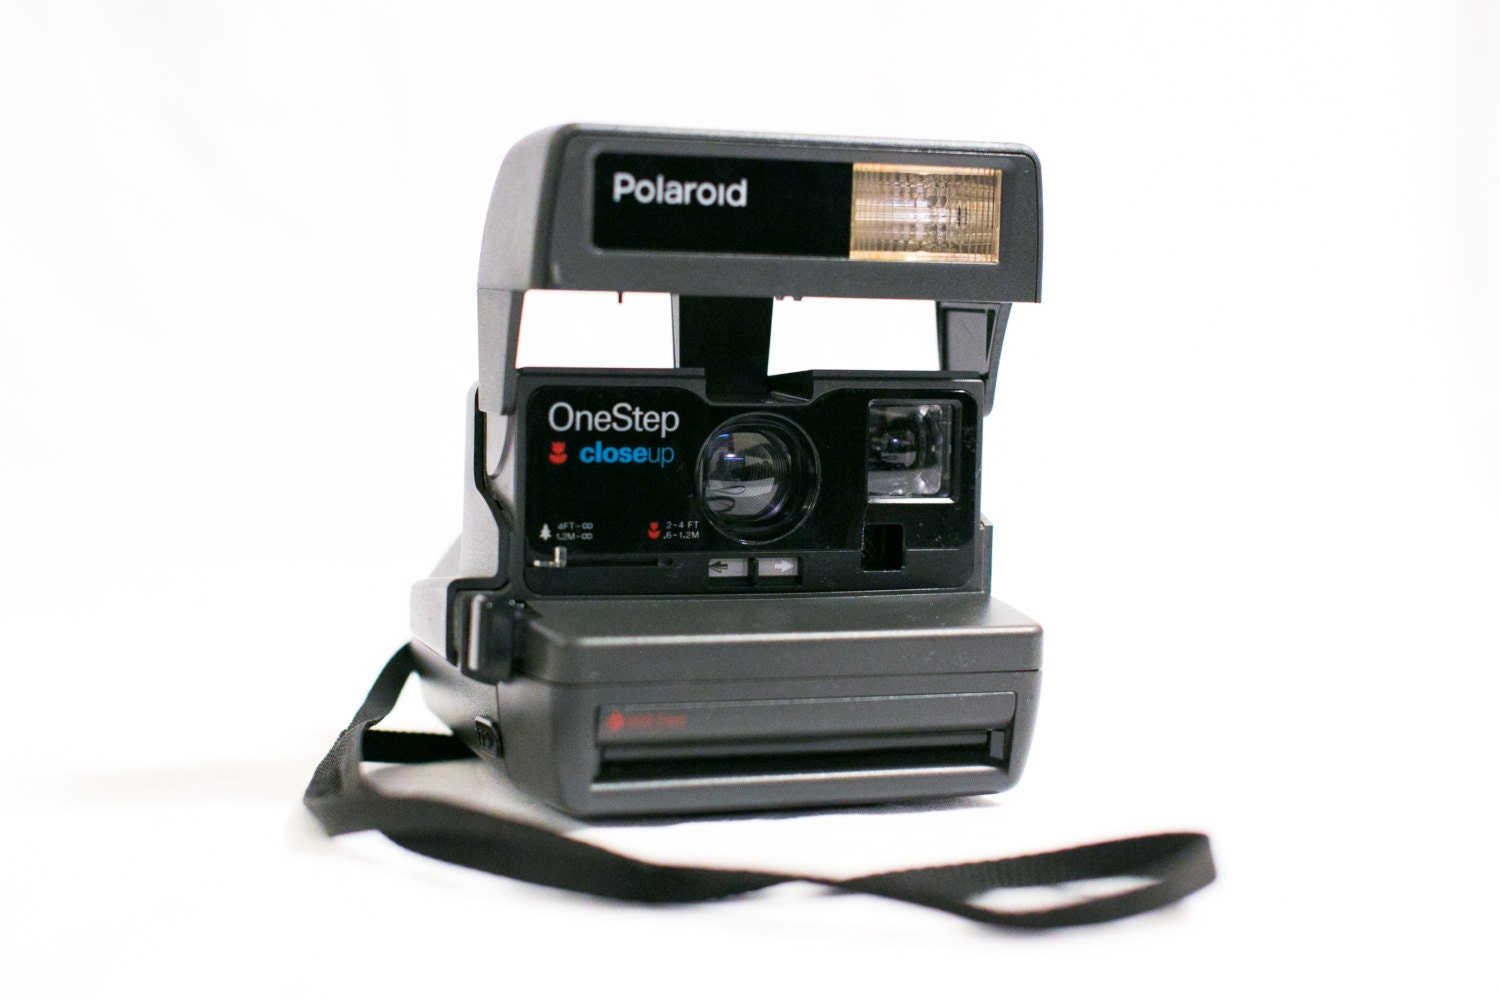 Office Furniture Kitchener Waterloo Polaroid Onestep Closeup 600 Review 28 Images Polaroid